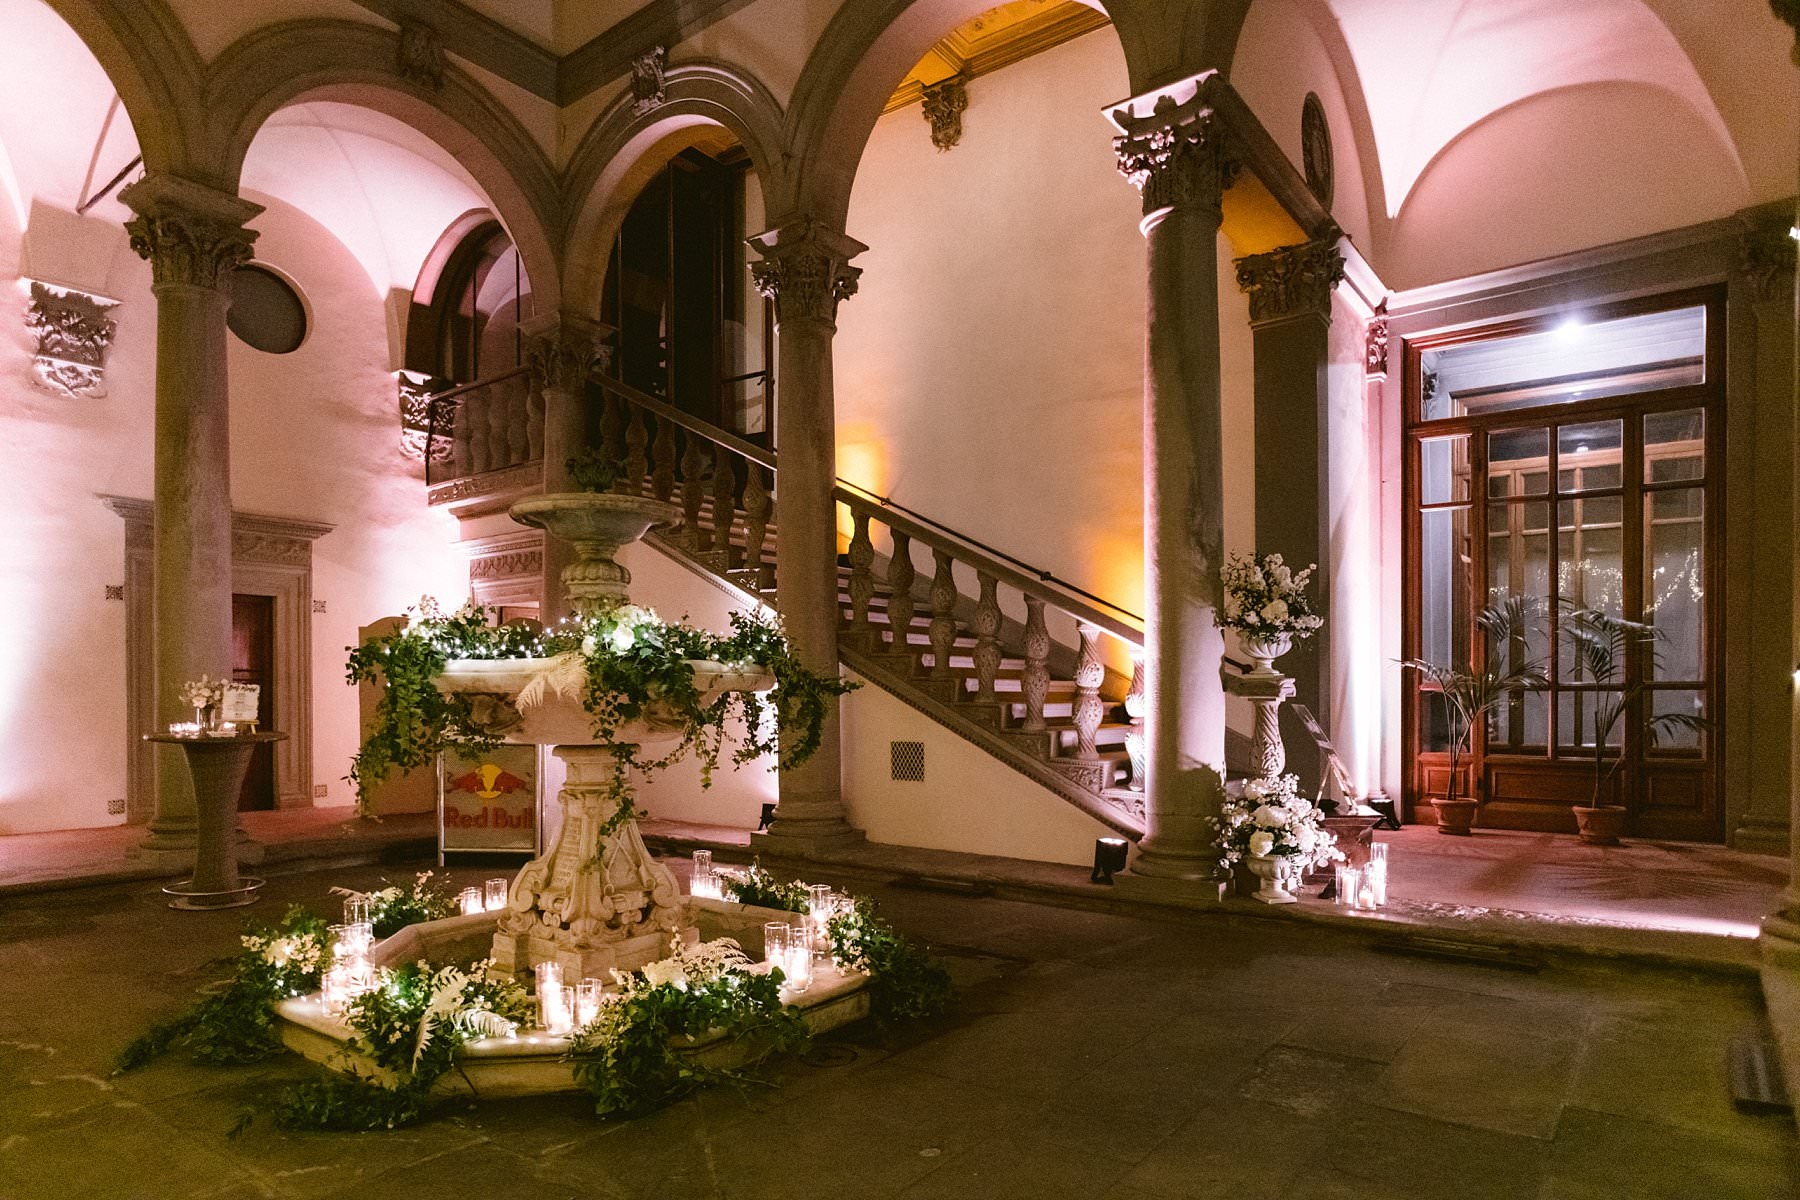 Intimate exquisite wedding in the heart of Florence, Italy. When you bring together a lovely couple, a small group of family members and friends and the best venues in a charming city like Florence, you can only get one result: an exquisite wedding to be cherished forever. Luxury wedding dinner at exclusive wedding venue Palazzo Gondi in the very hear of Florence